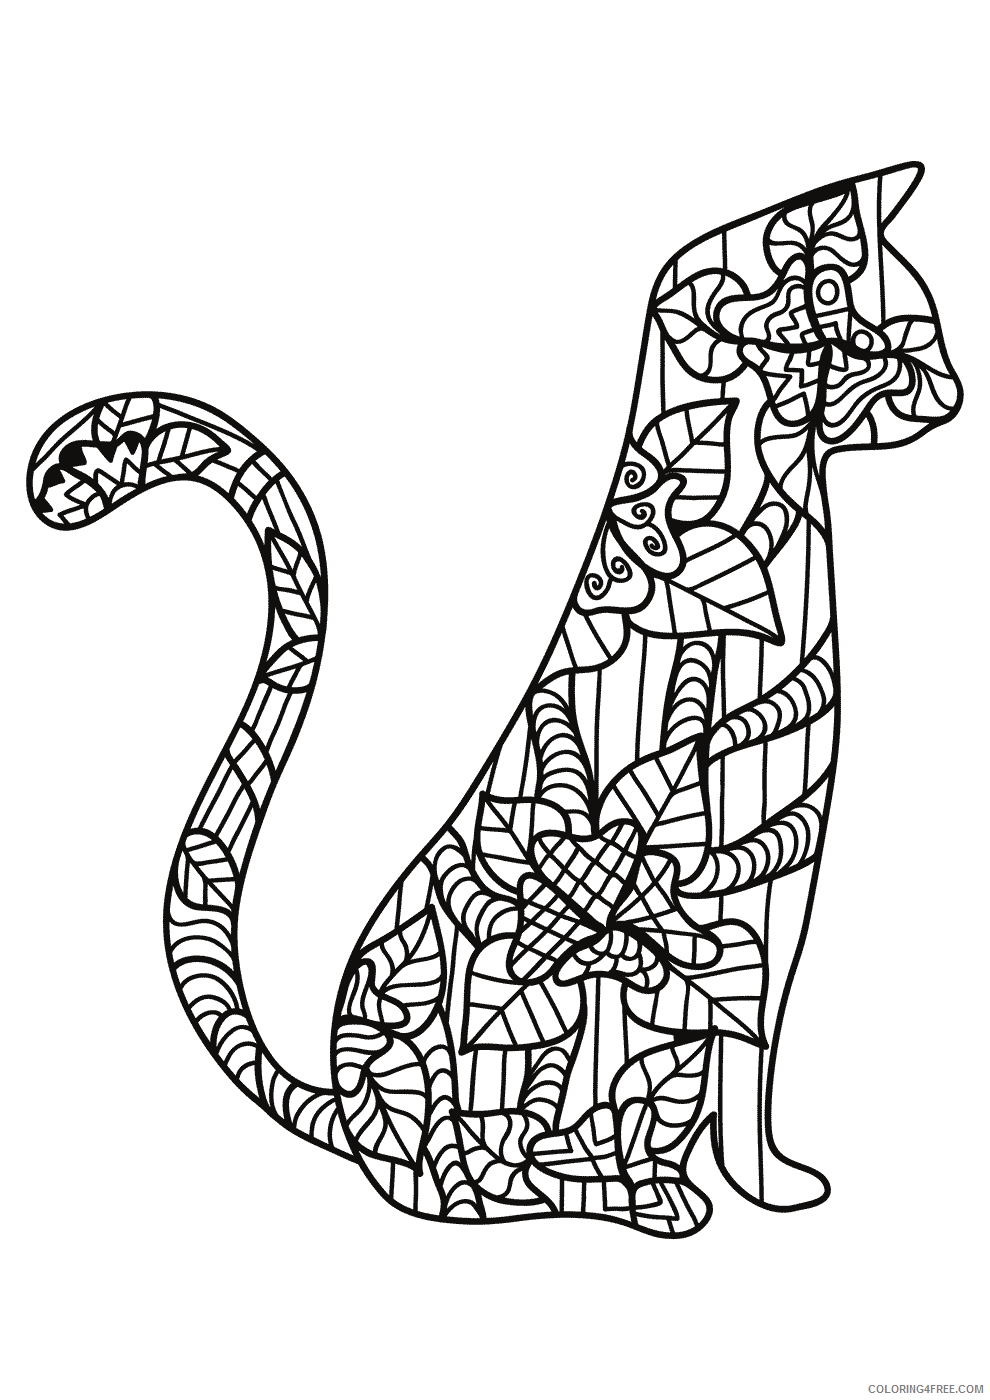 Adult Cat Coloring Pages Cat for Adults Printable 2020 201 Coloring4free